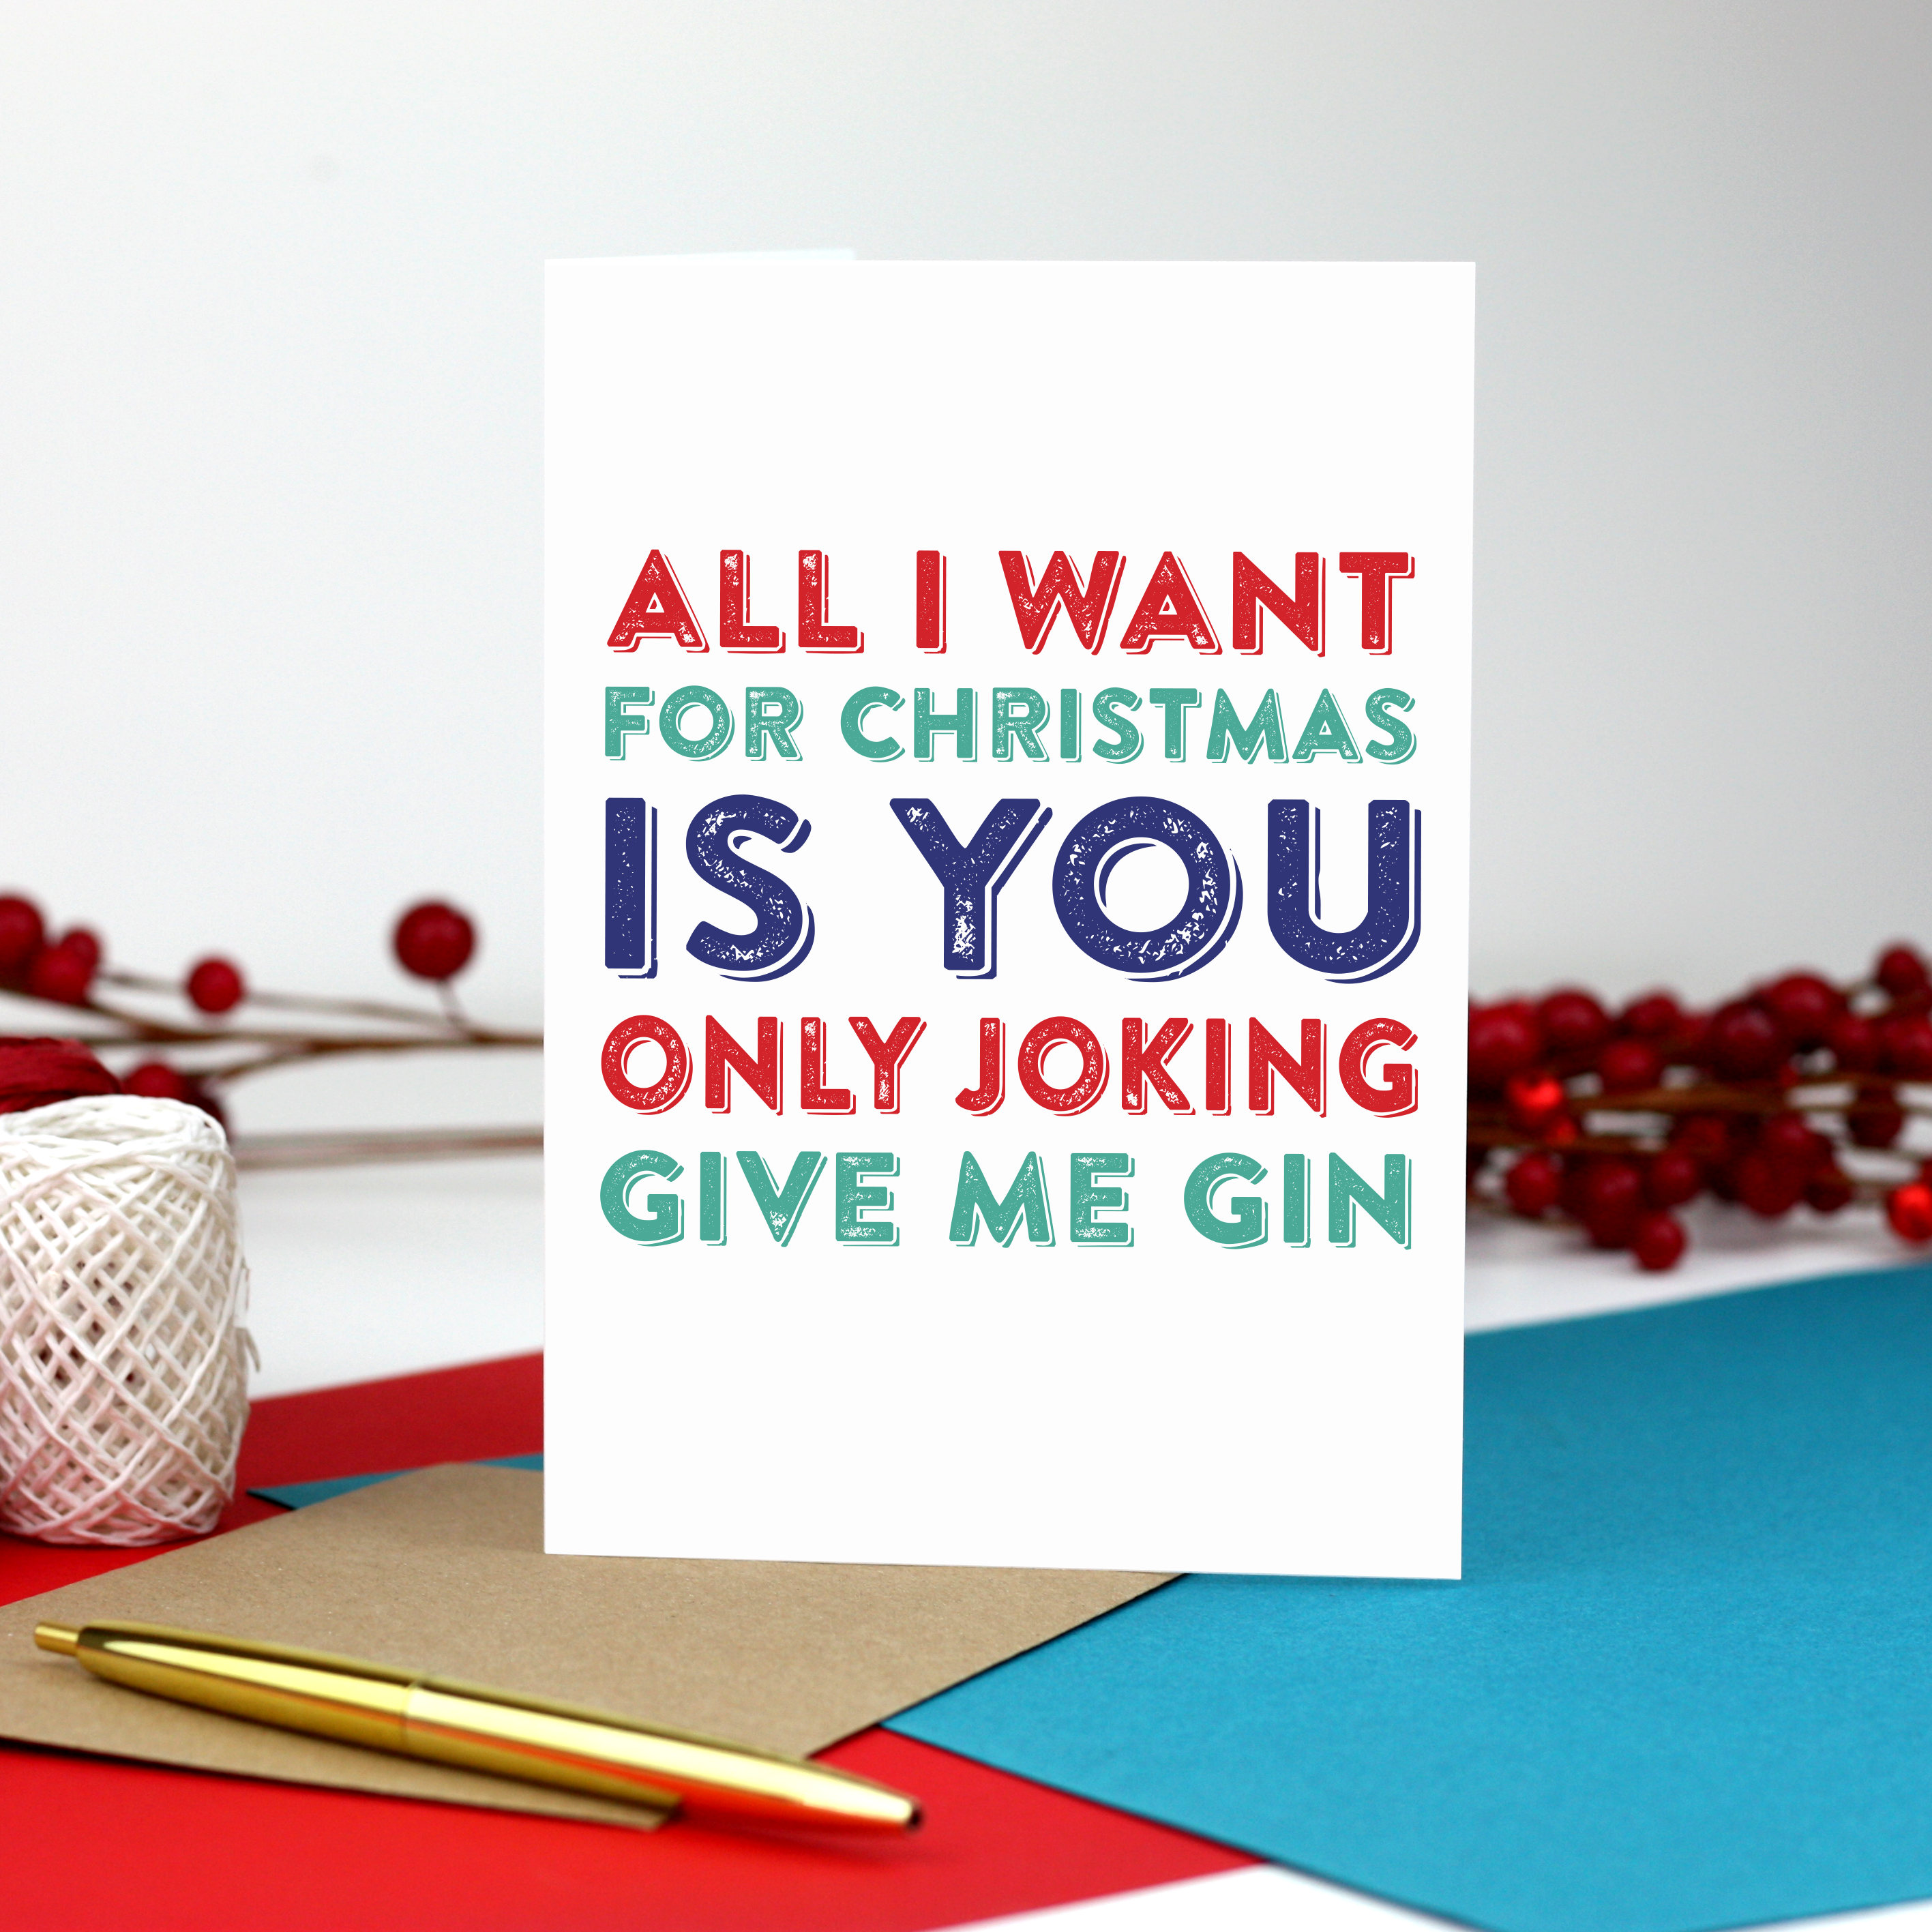 All I Want for Christmas Is You Only joking give me gin | Etsy